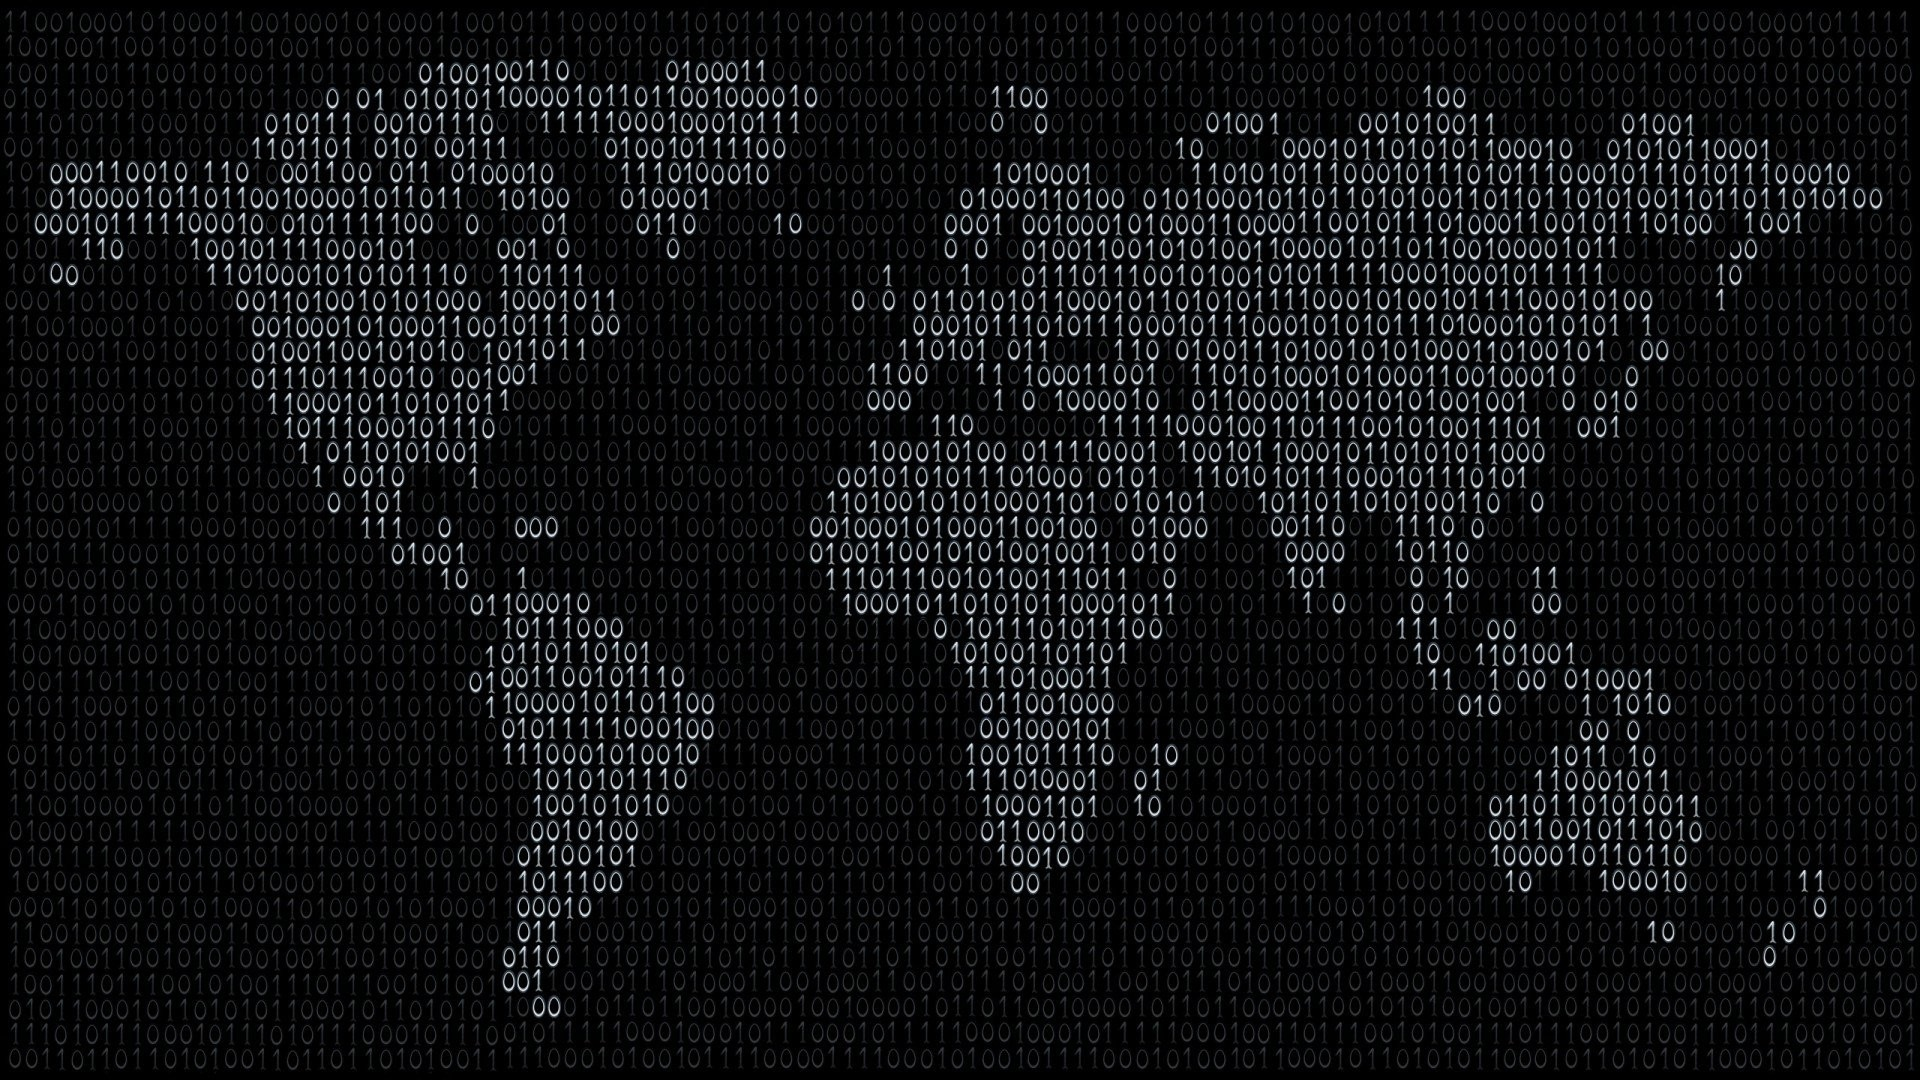 1280x1024 programming world map 1280x1024 resolution hd 4k